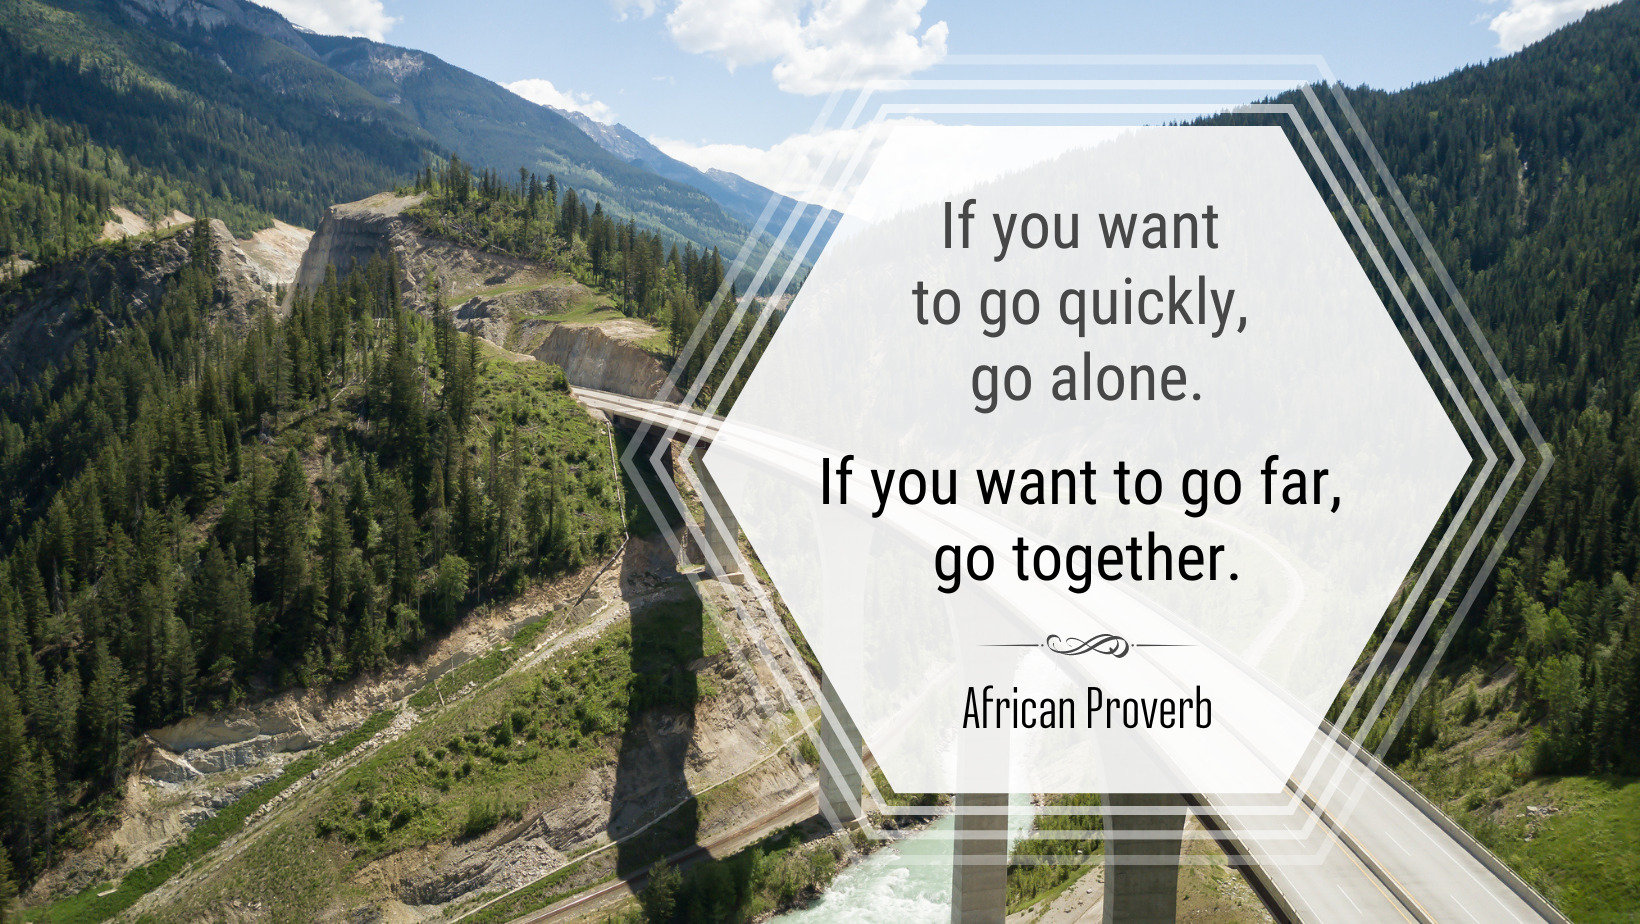 """African Proverb: """"If you want to go quickly, go alone. If you want to go far, go together."""""""